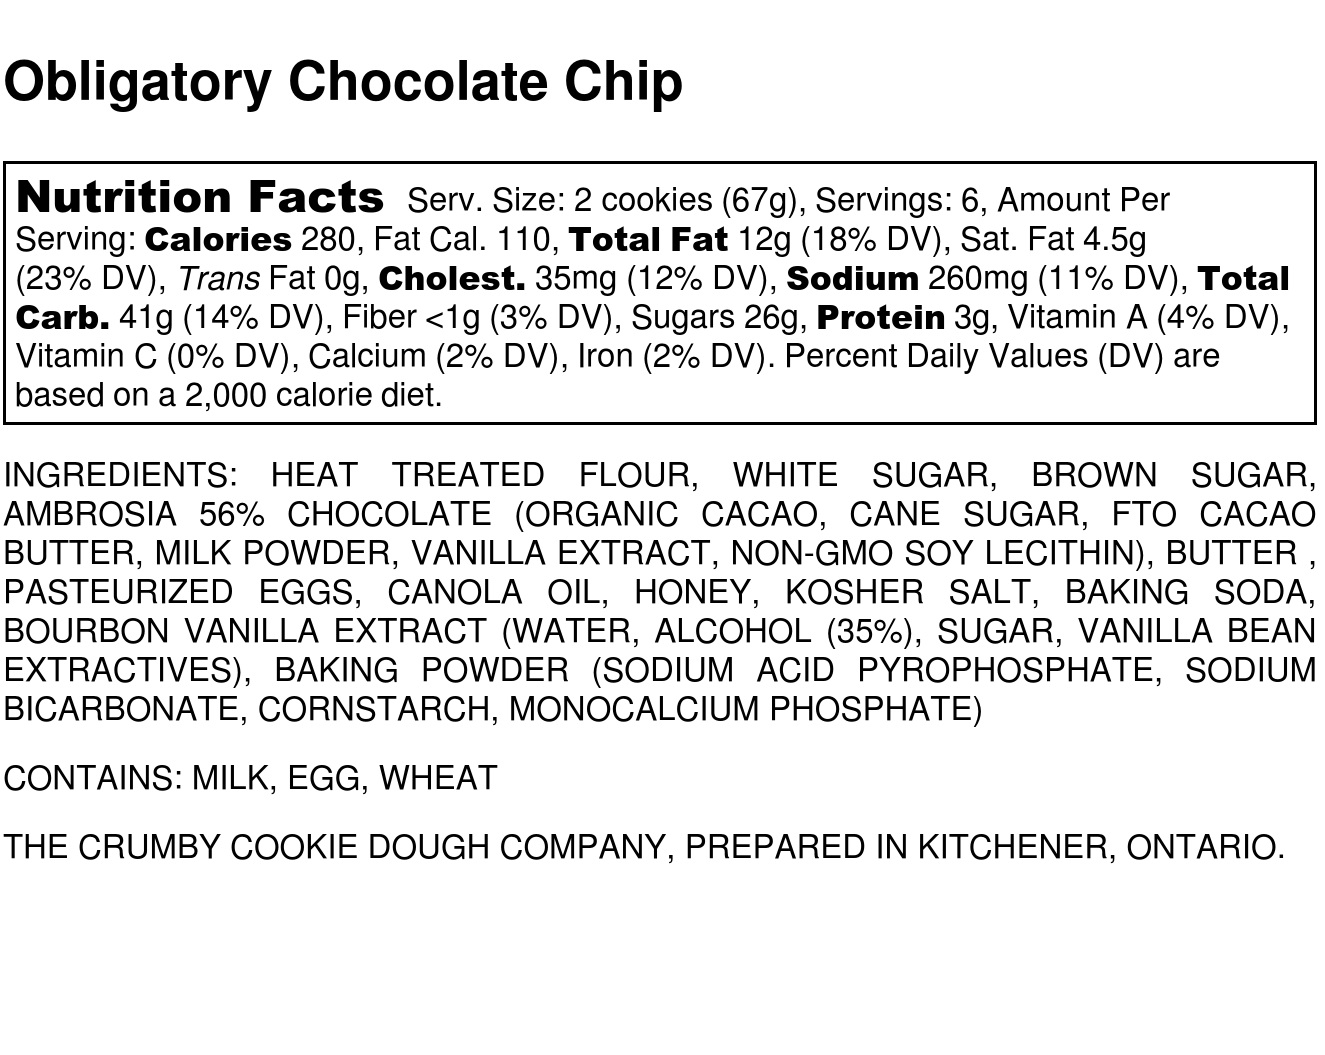 ingredients occ — The Crumby Cookie Dough Co